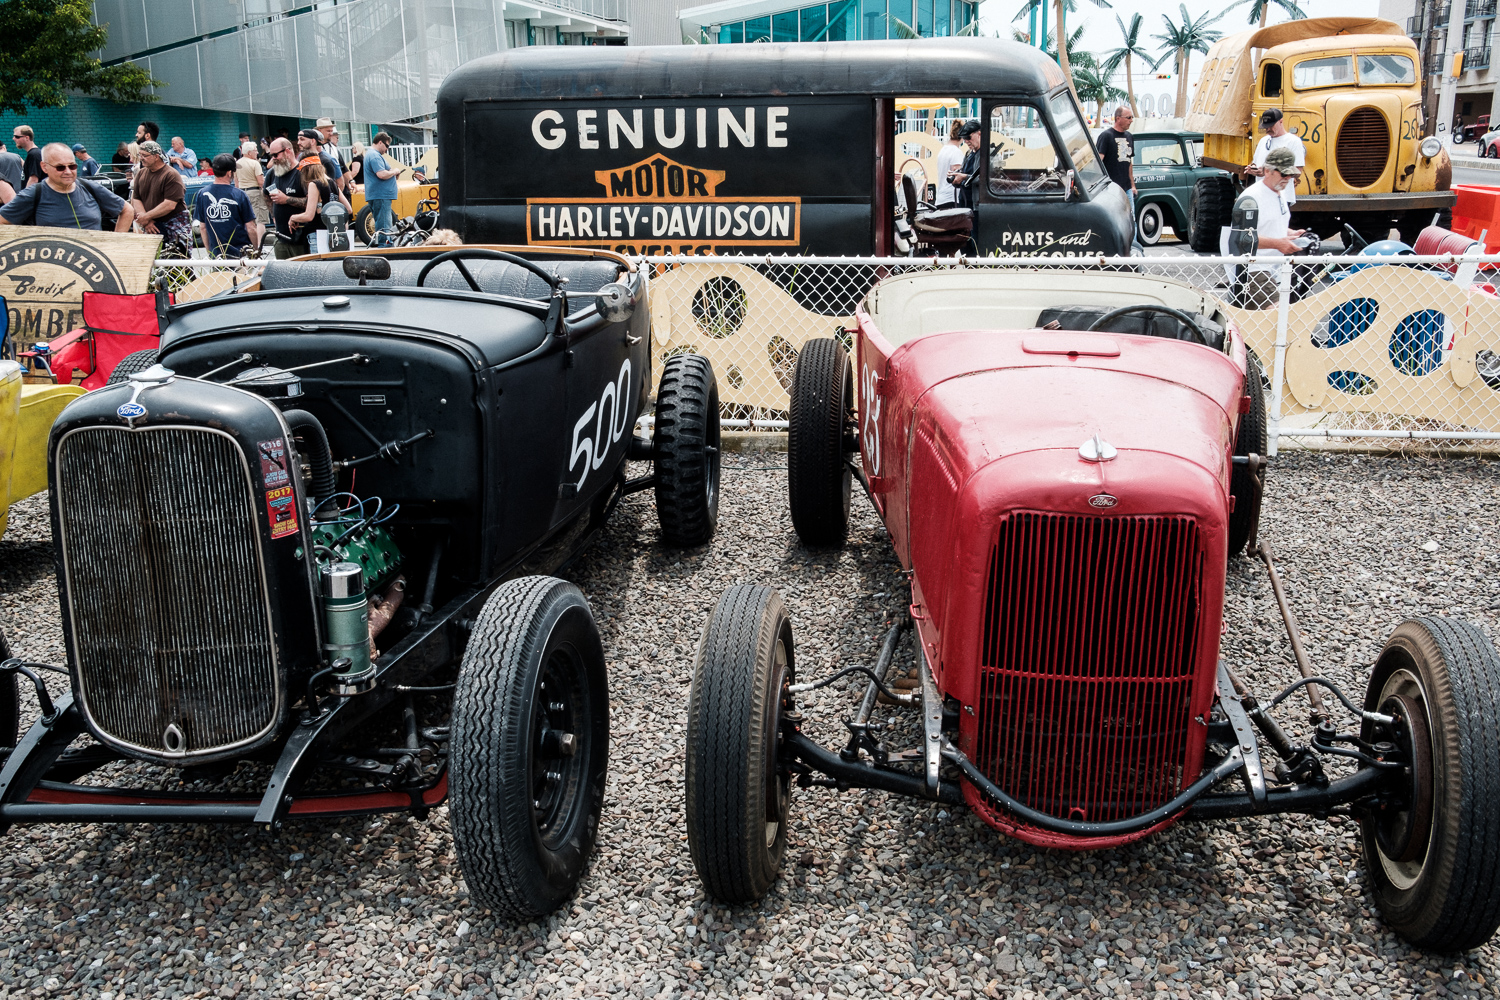 Cars ready to race at The Race of Gentlemen.